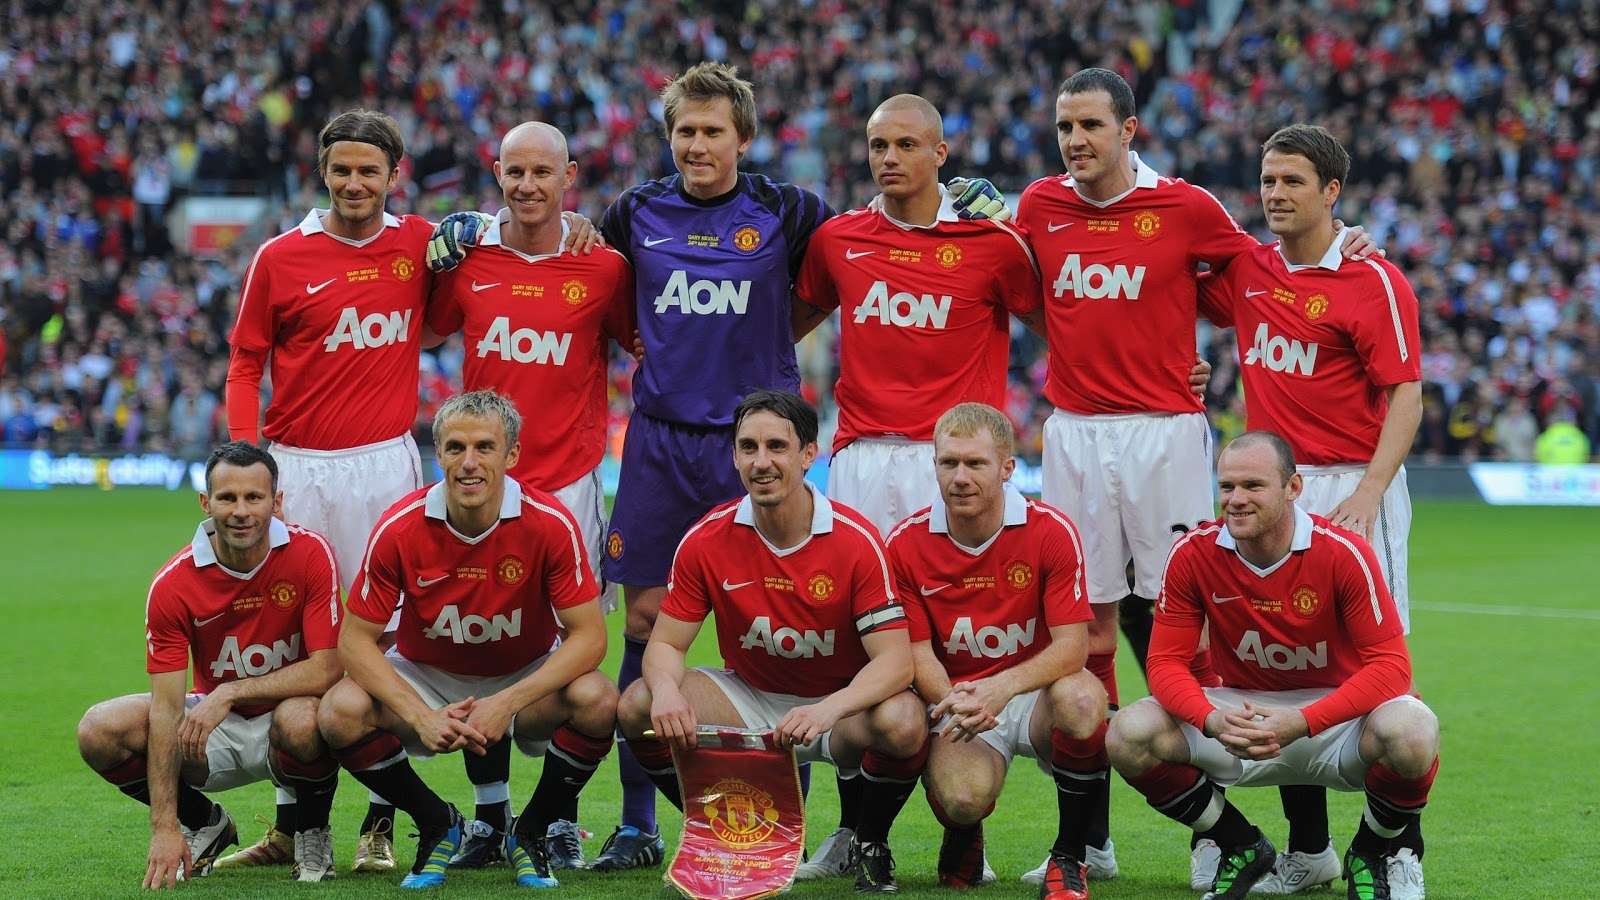 Manchester United Soccer Wallpapers 2012 2013 1640